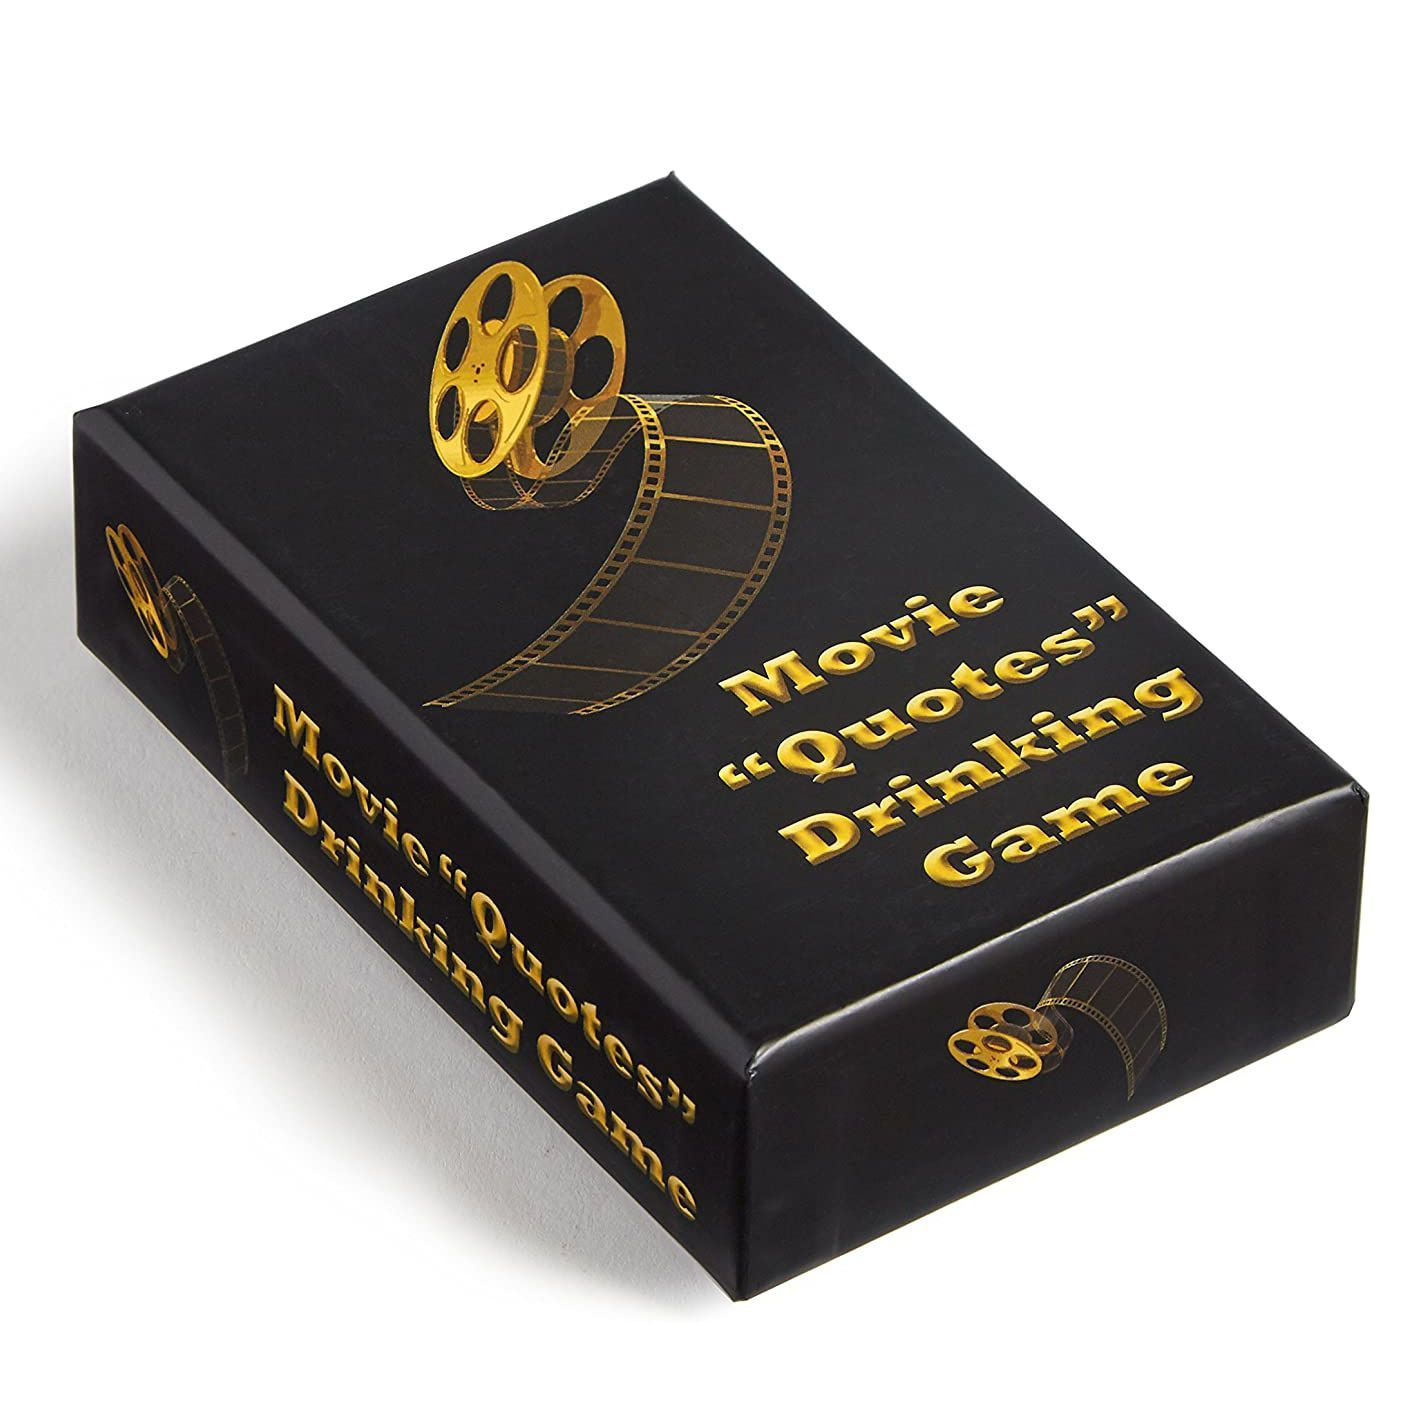 20 Best Gifts For Movie Lovers 2021 Unique Gift Ideas For Film Buffs